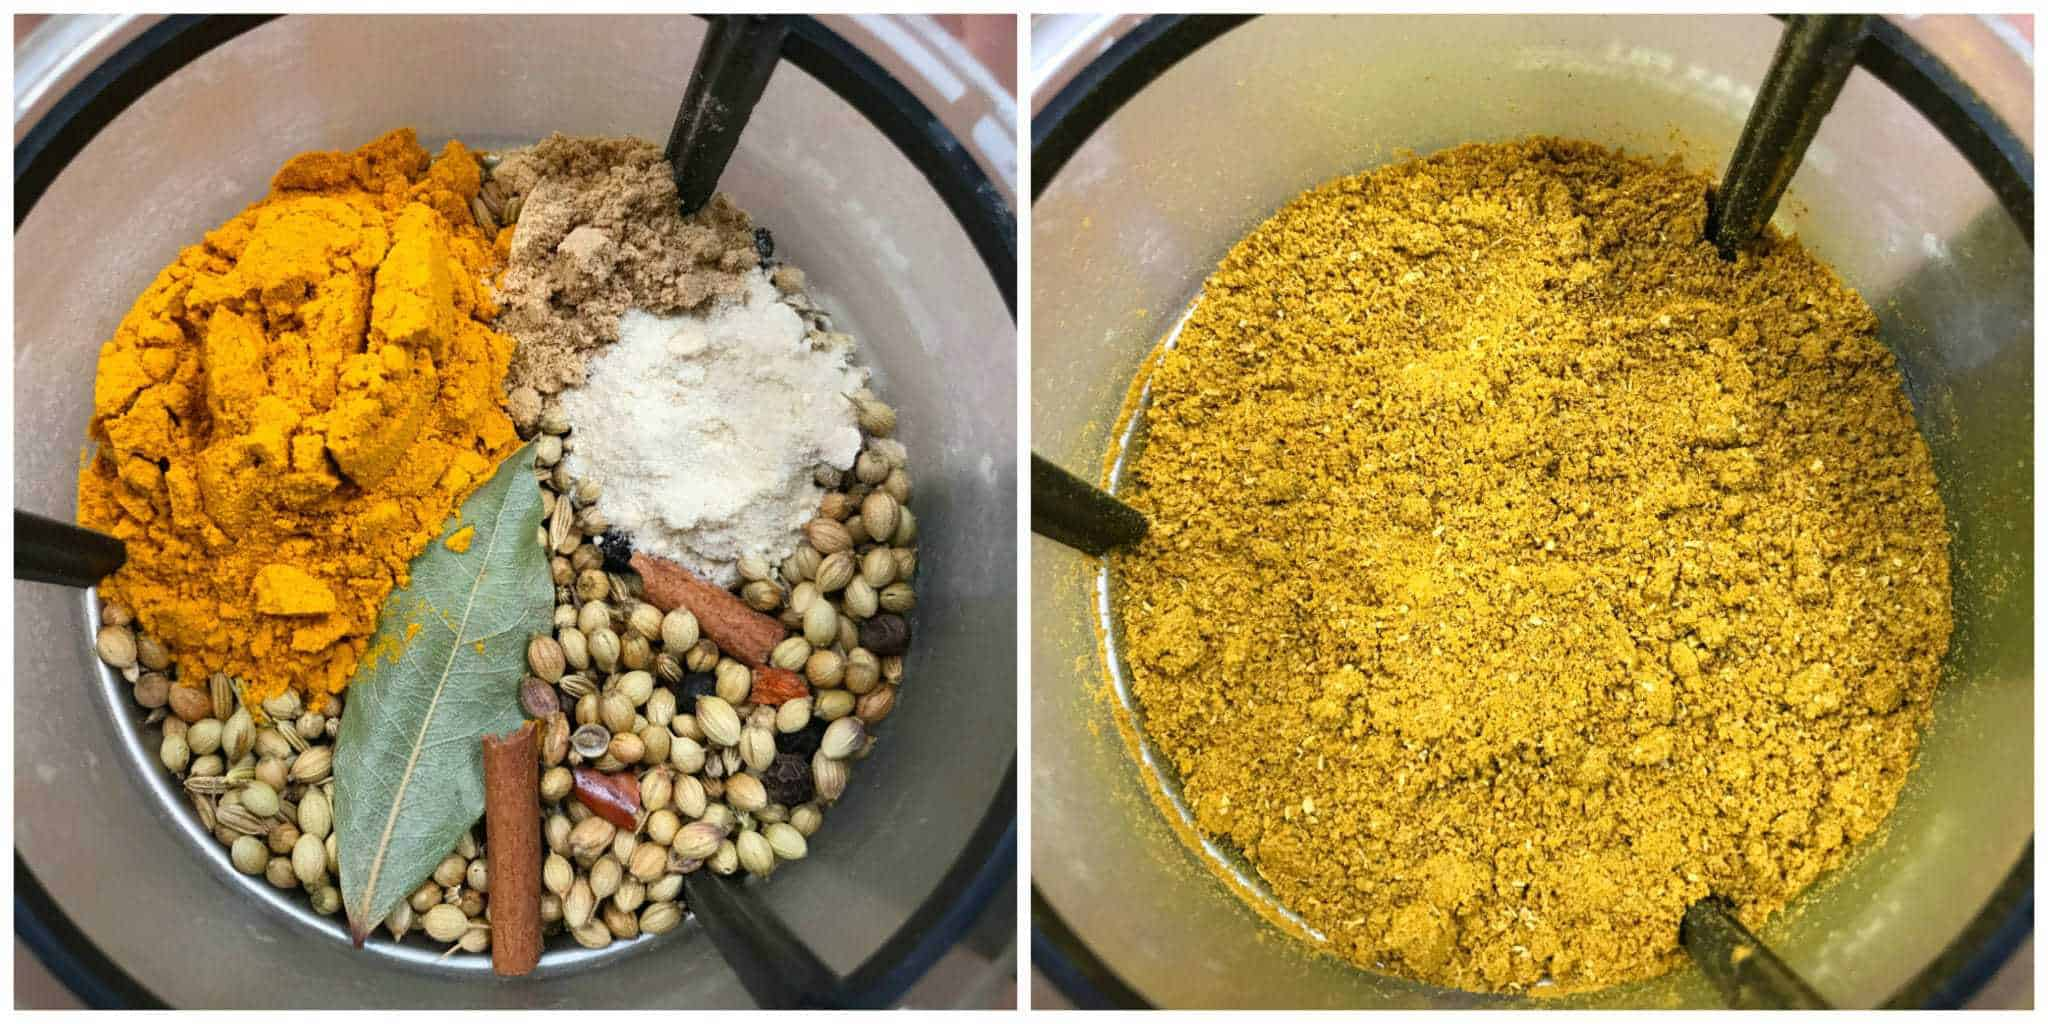 grinding Indian spices